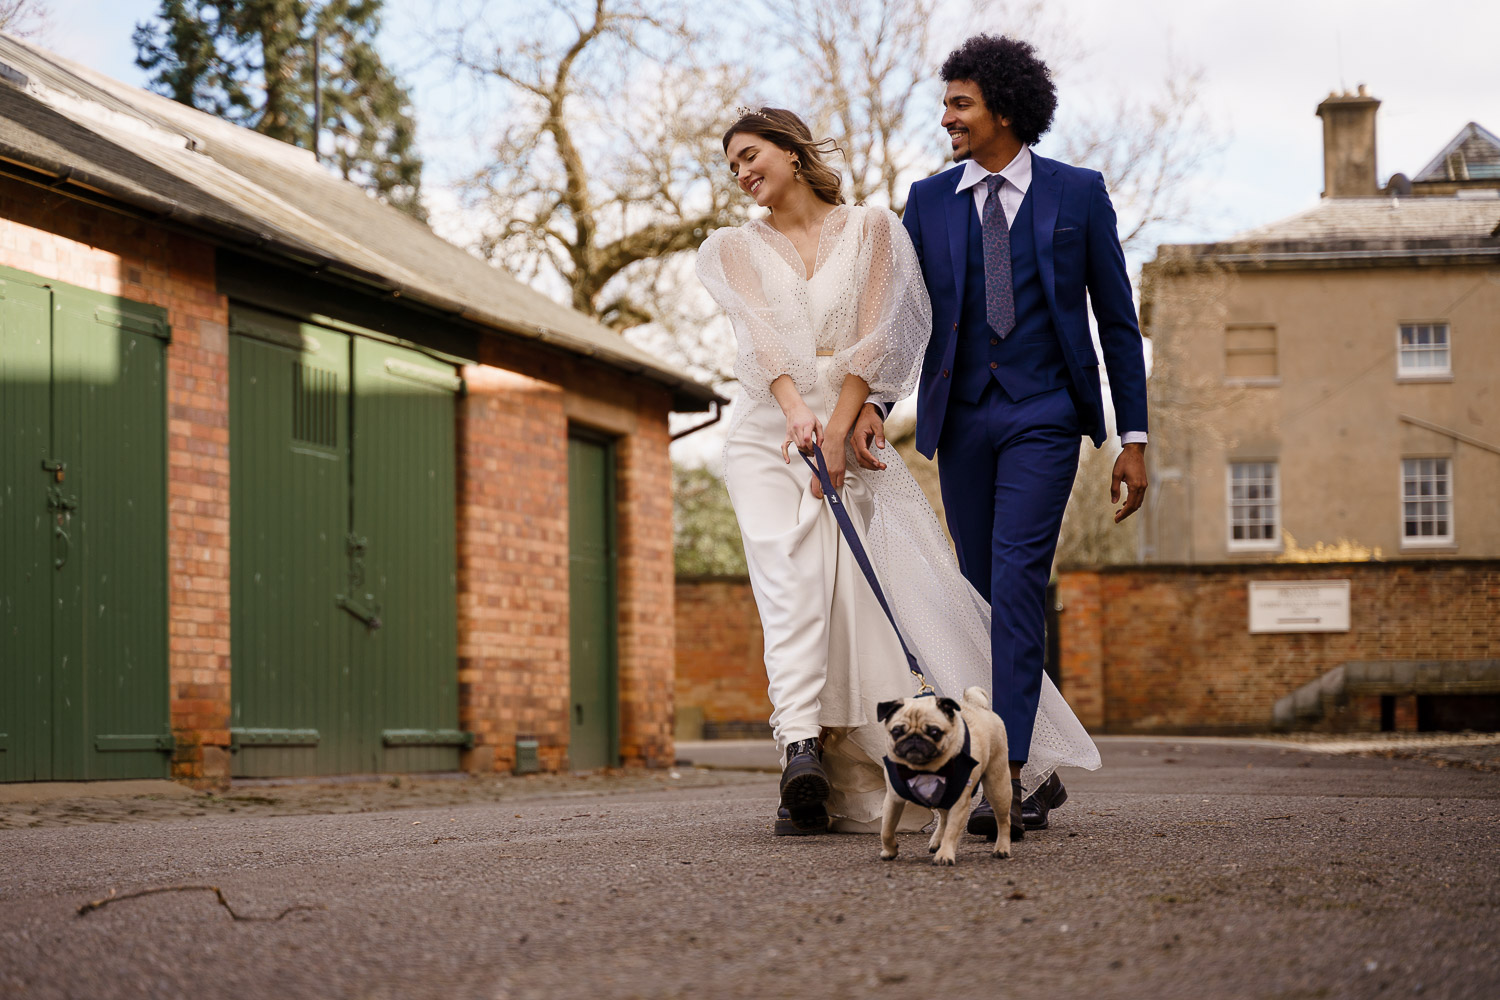 dog friendly wedding- dogs at weddings- katherine and her camera- dog wedding accessories-unconventional wedding- wedding planning advice- pets at weddings- couples photo walking dog